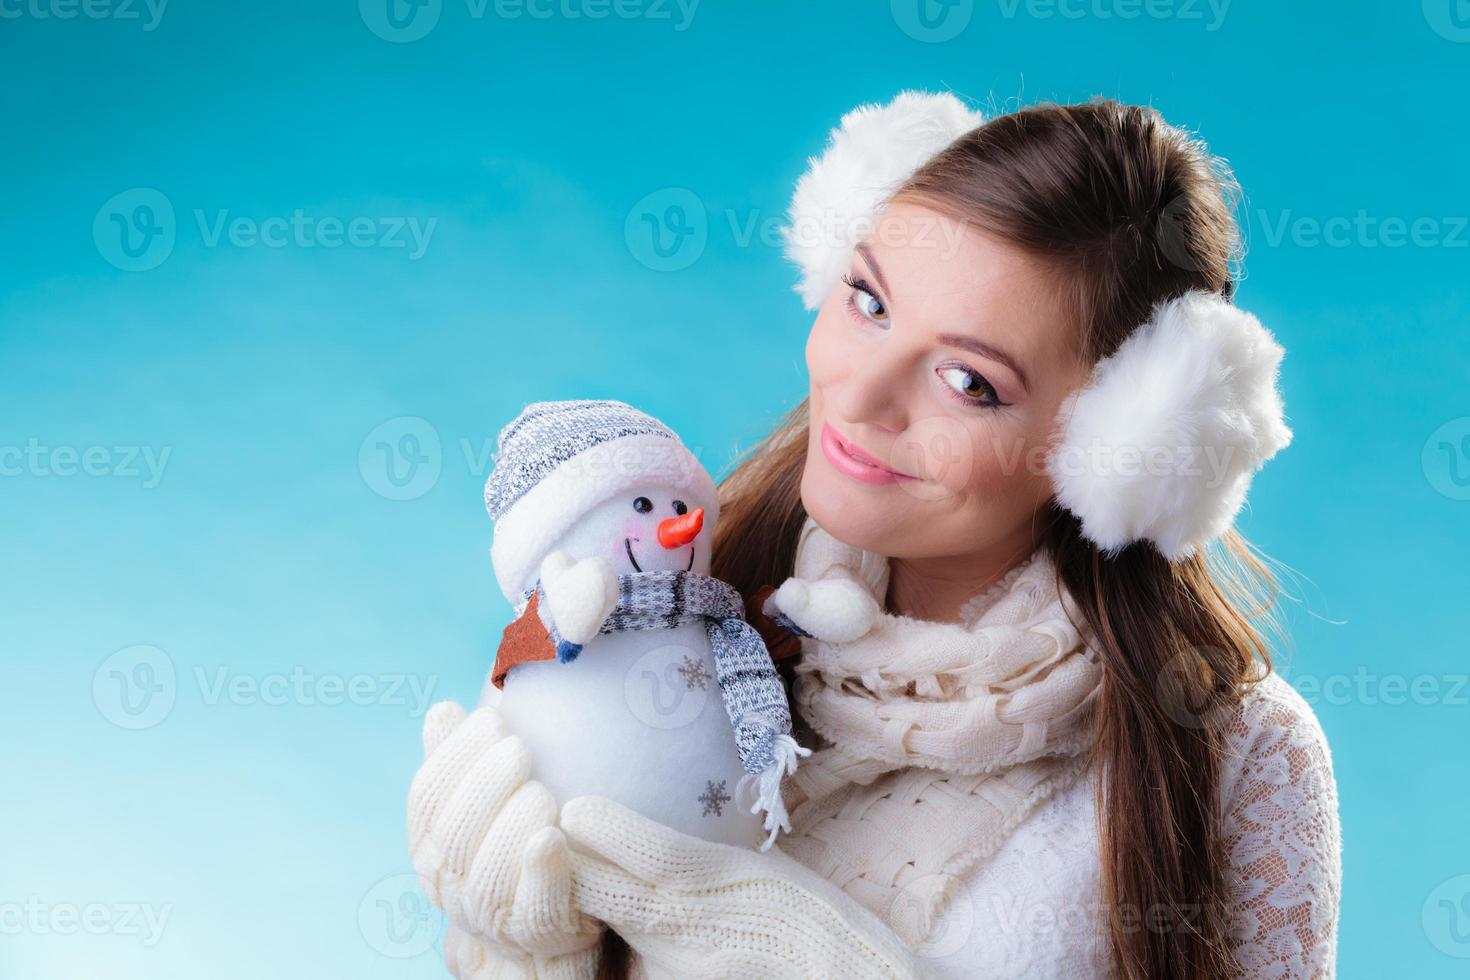 Woman in warm clothes holding snowman toy. photo